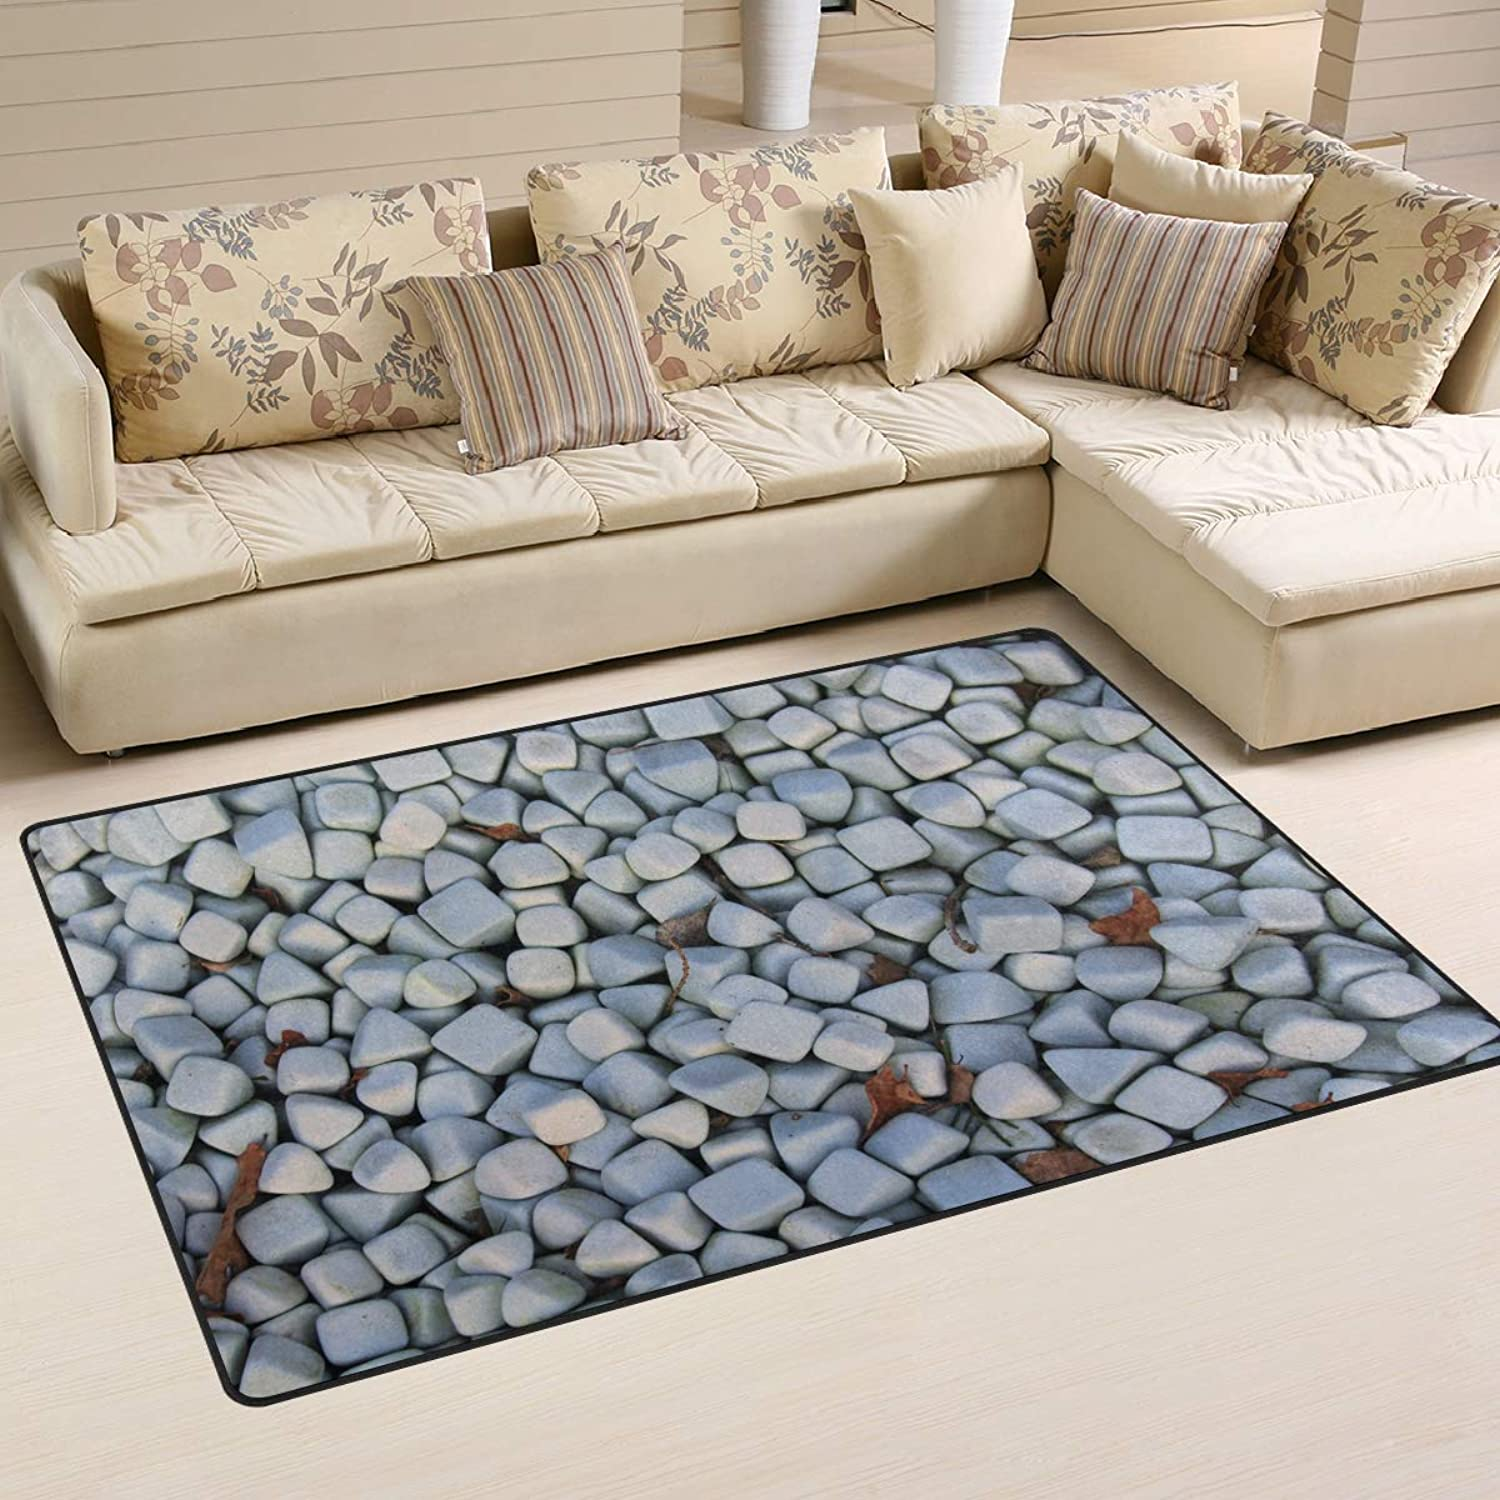 FANTAZIO Area Rug Accessories Shape Square Triangle Pebbles Entry doormats for Corners and Edge Anti-Curling Ideal Rug Stopper 31x20in 60x39in